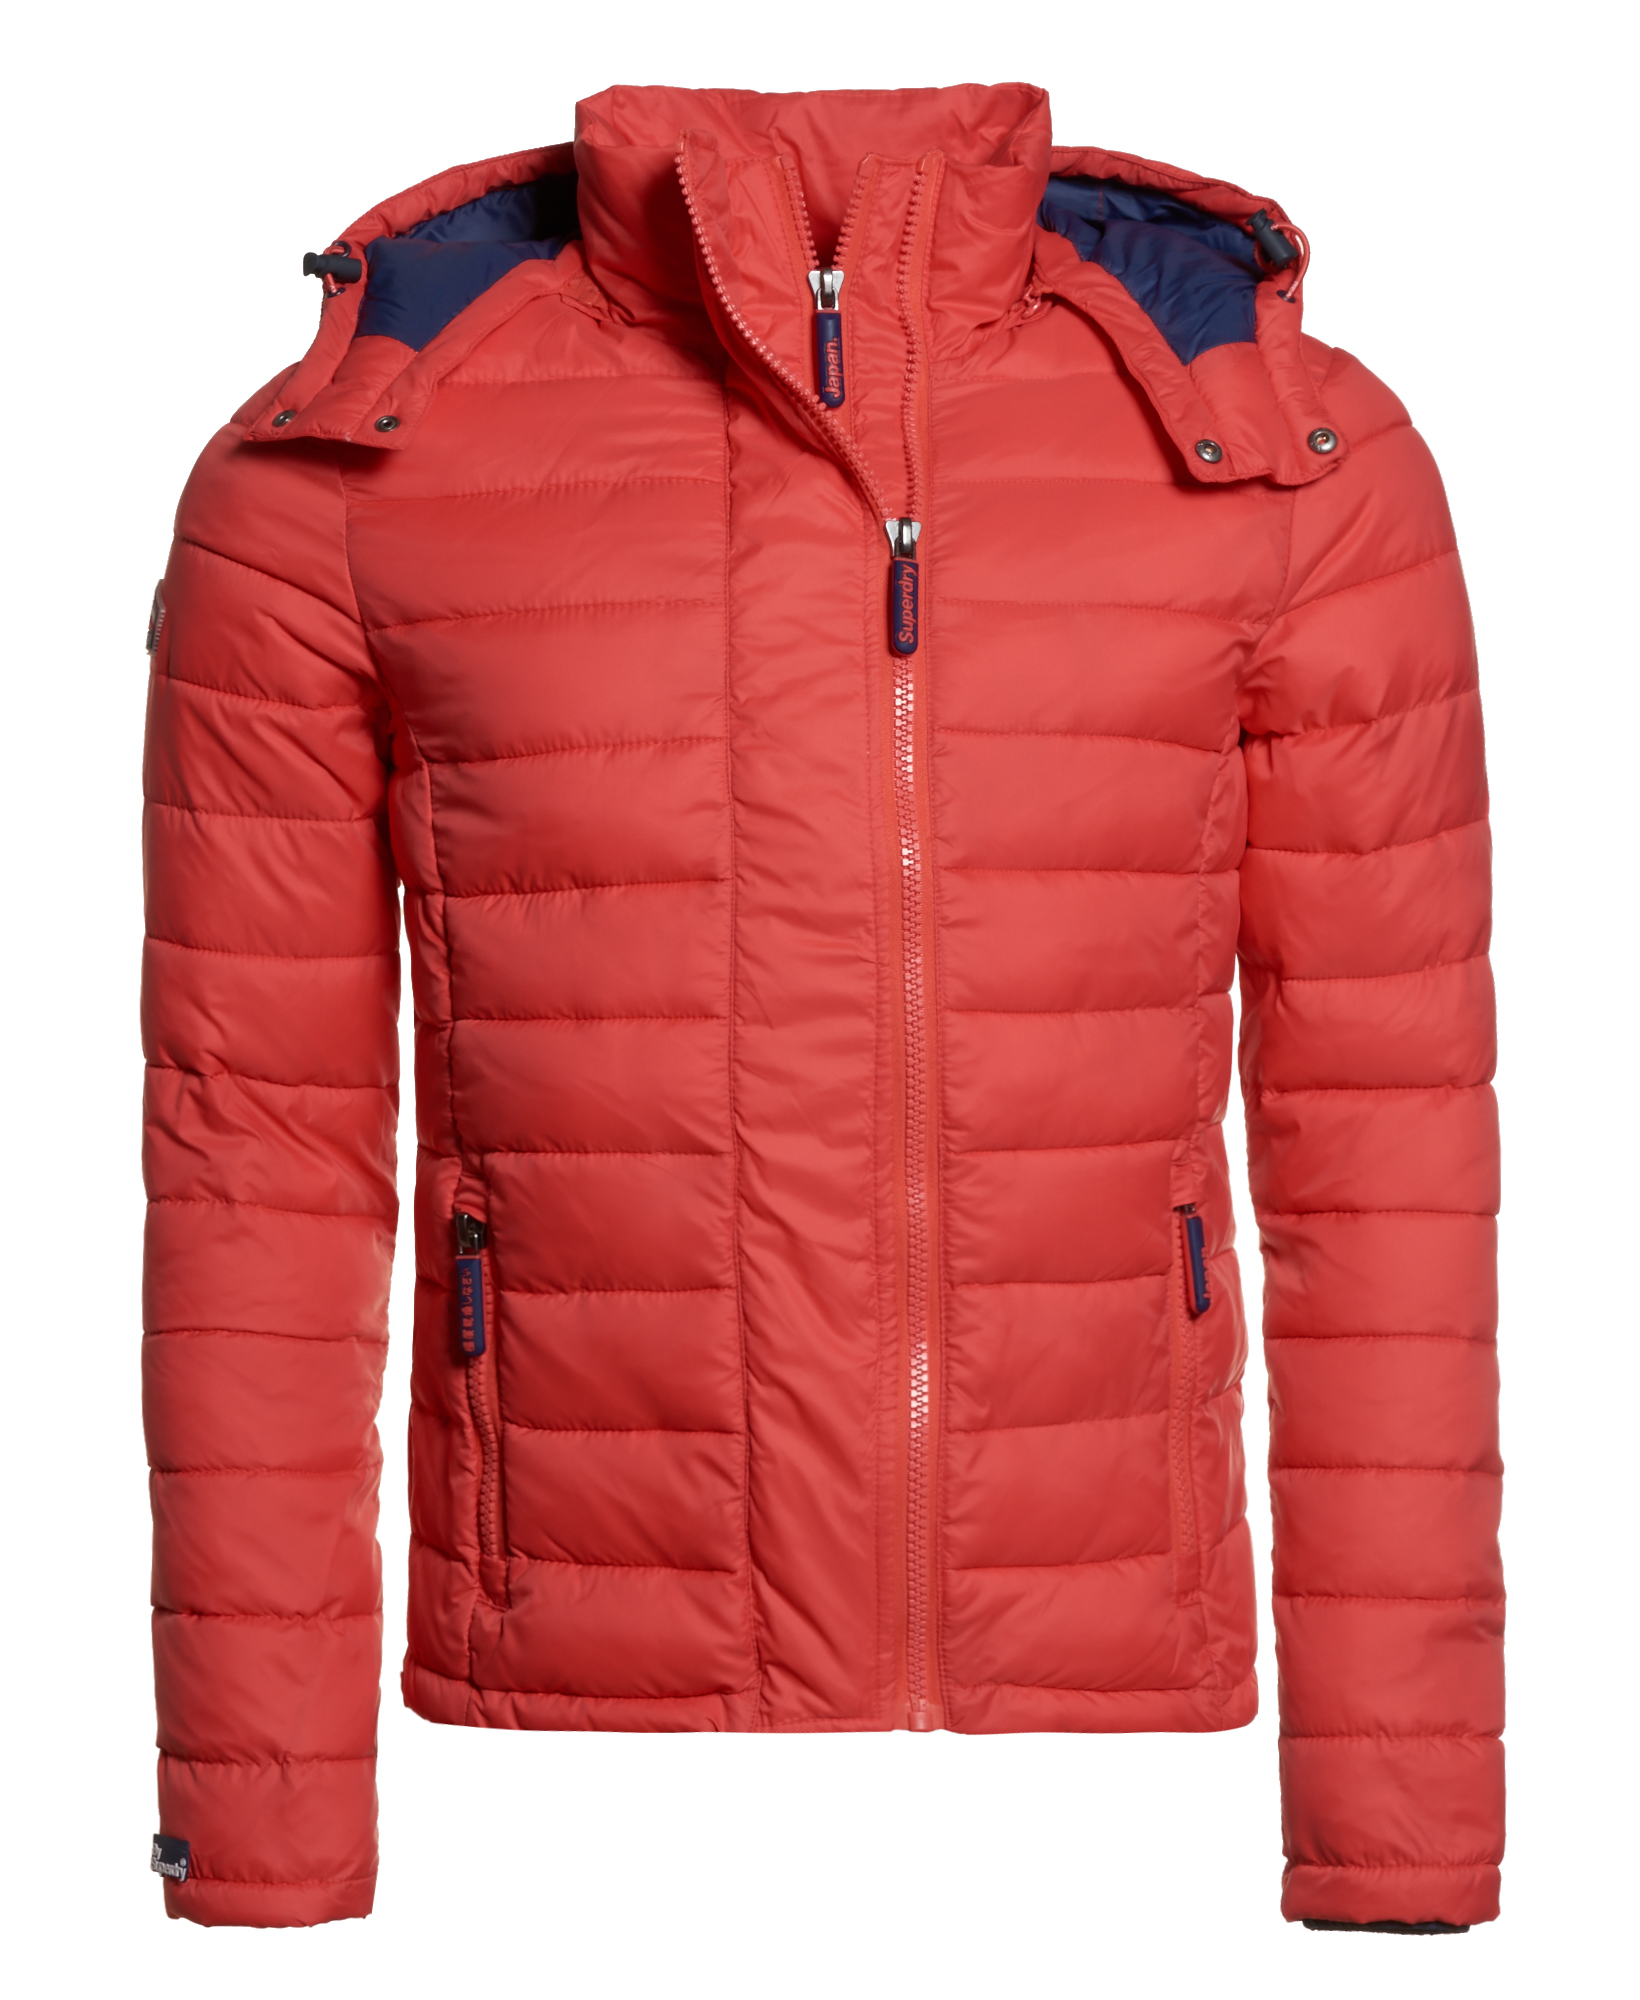 New Mens Superdry Jackets Selection 1812 1